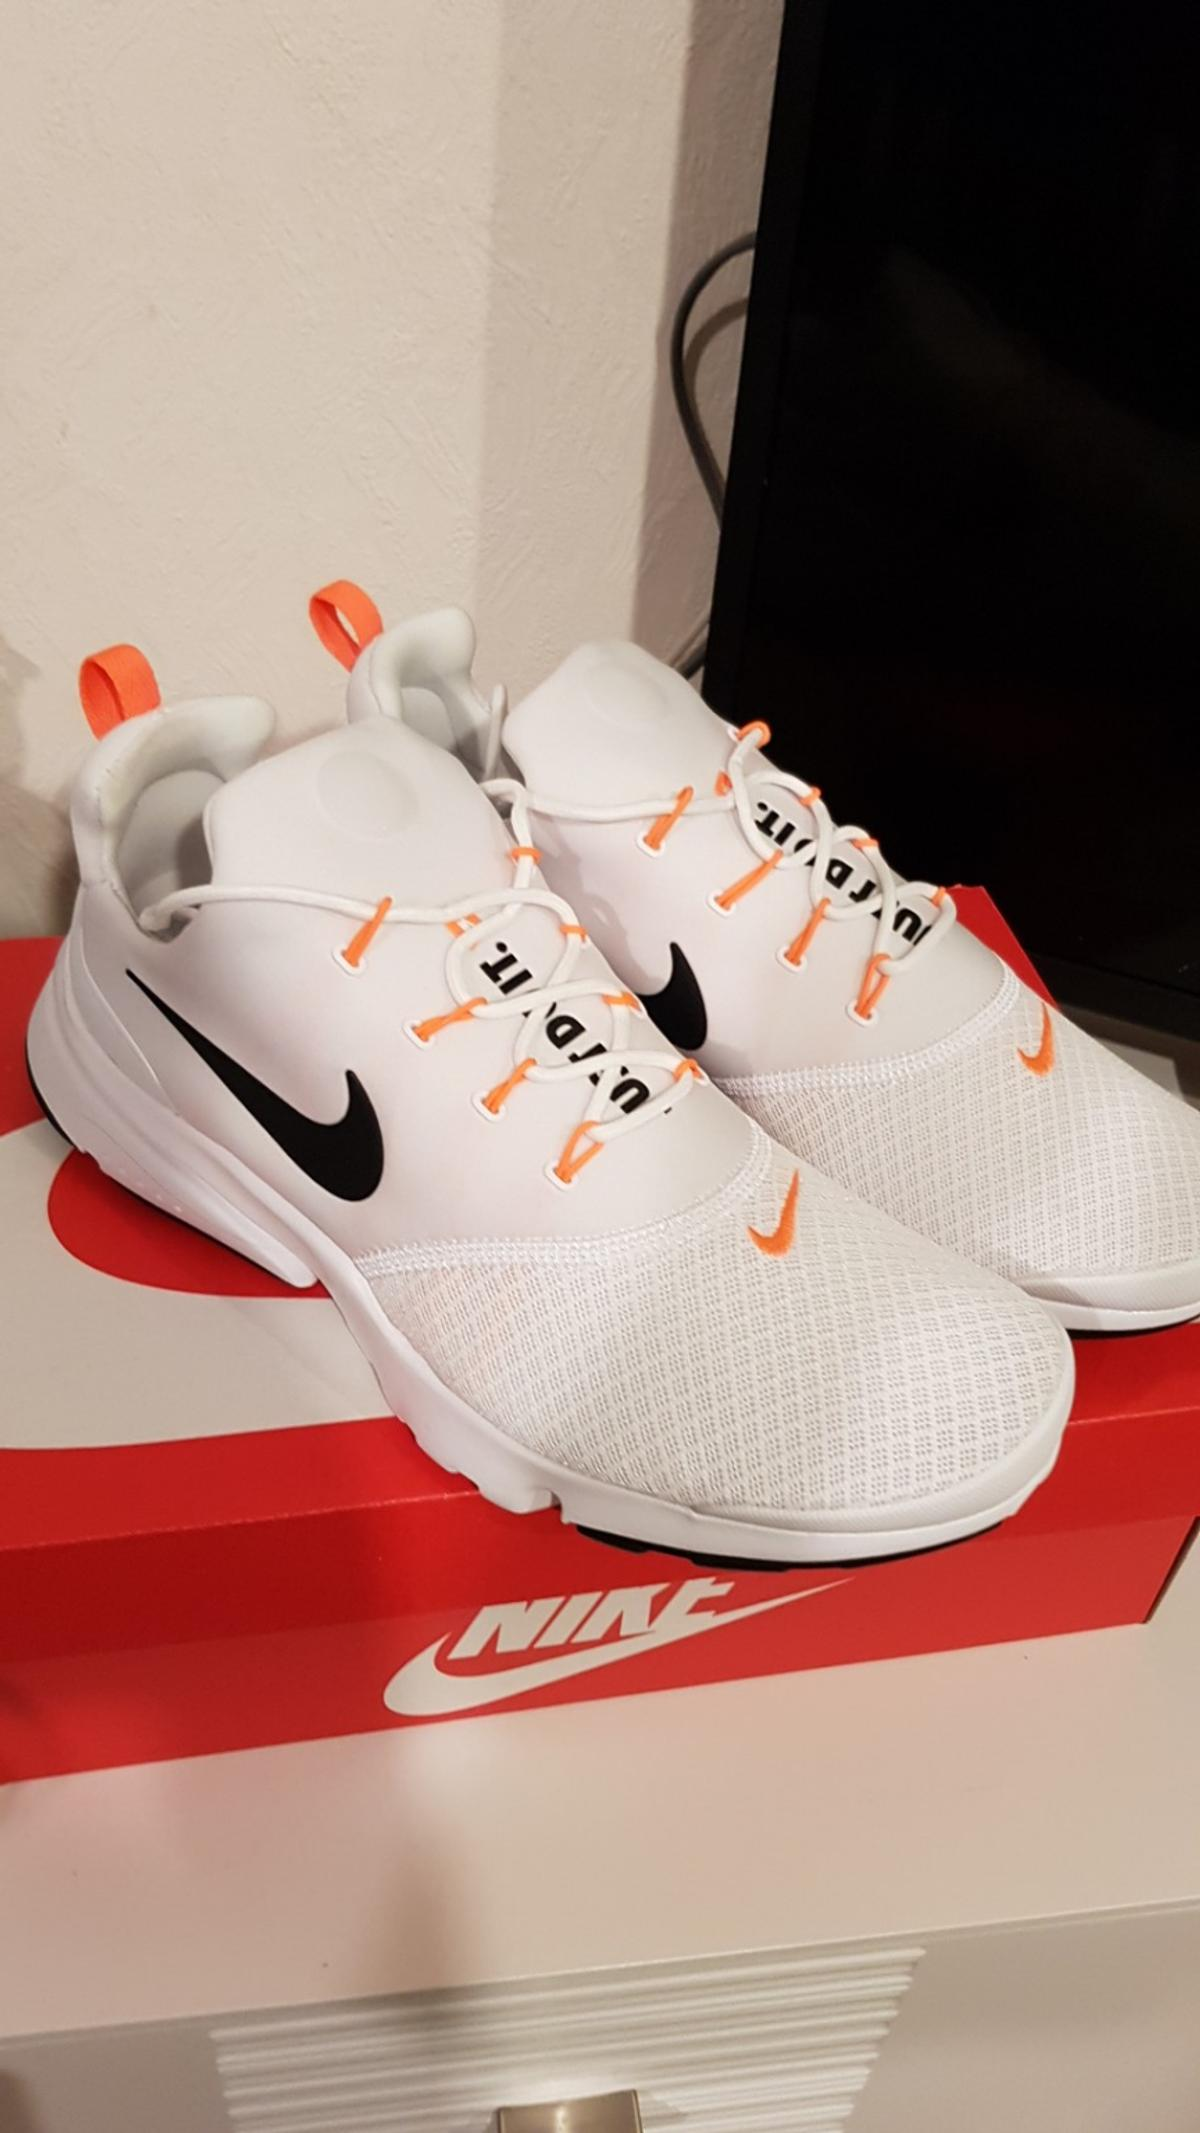 outlet store 7cc51 1ebfc NIKE PRESTO FLY JDI (WHITE) in 31737 Rinteln for €60.00 for sale ...